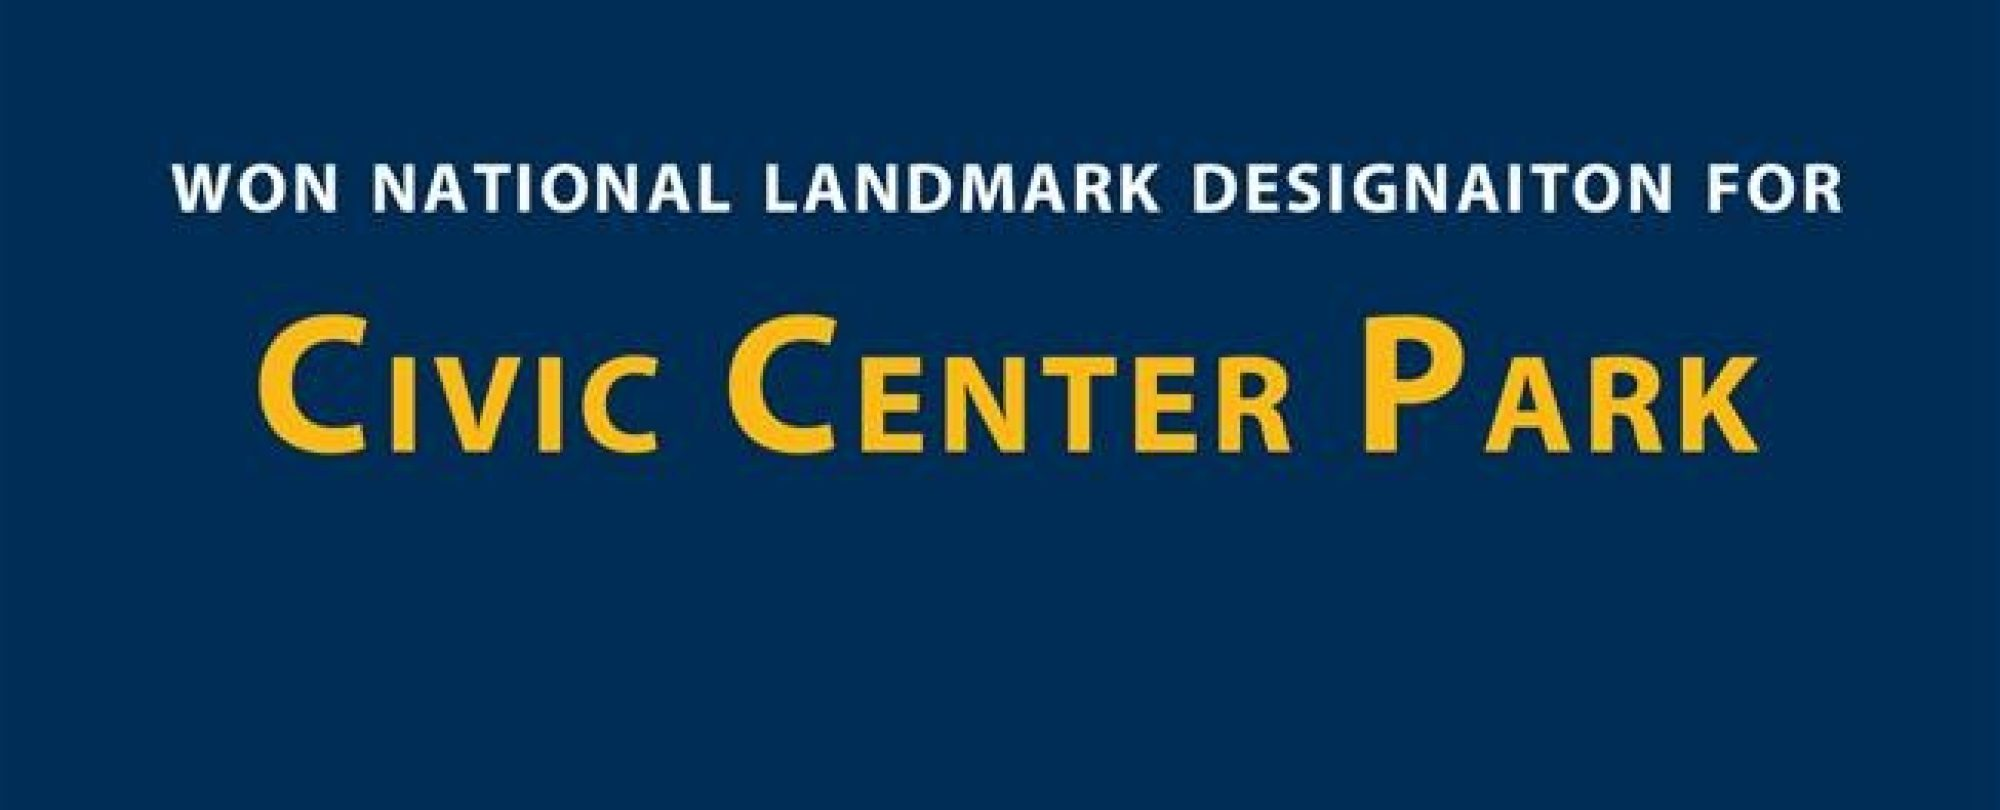 Won national landmark designation for Civic Center Park